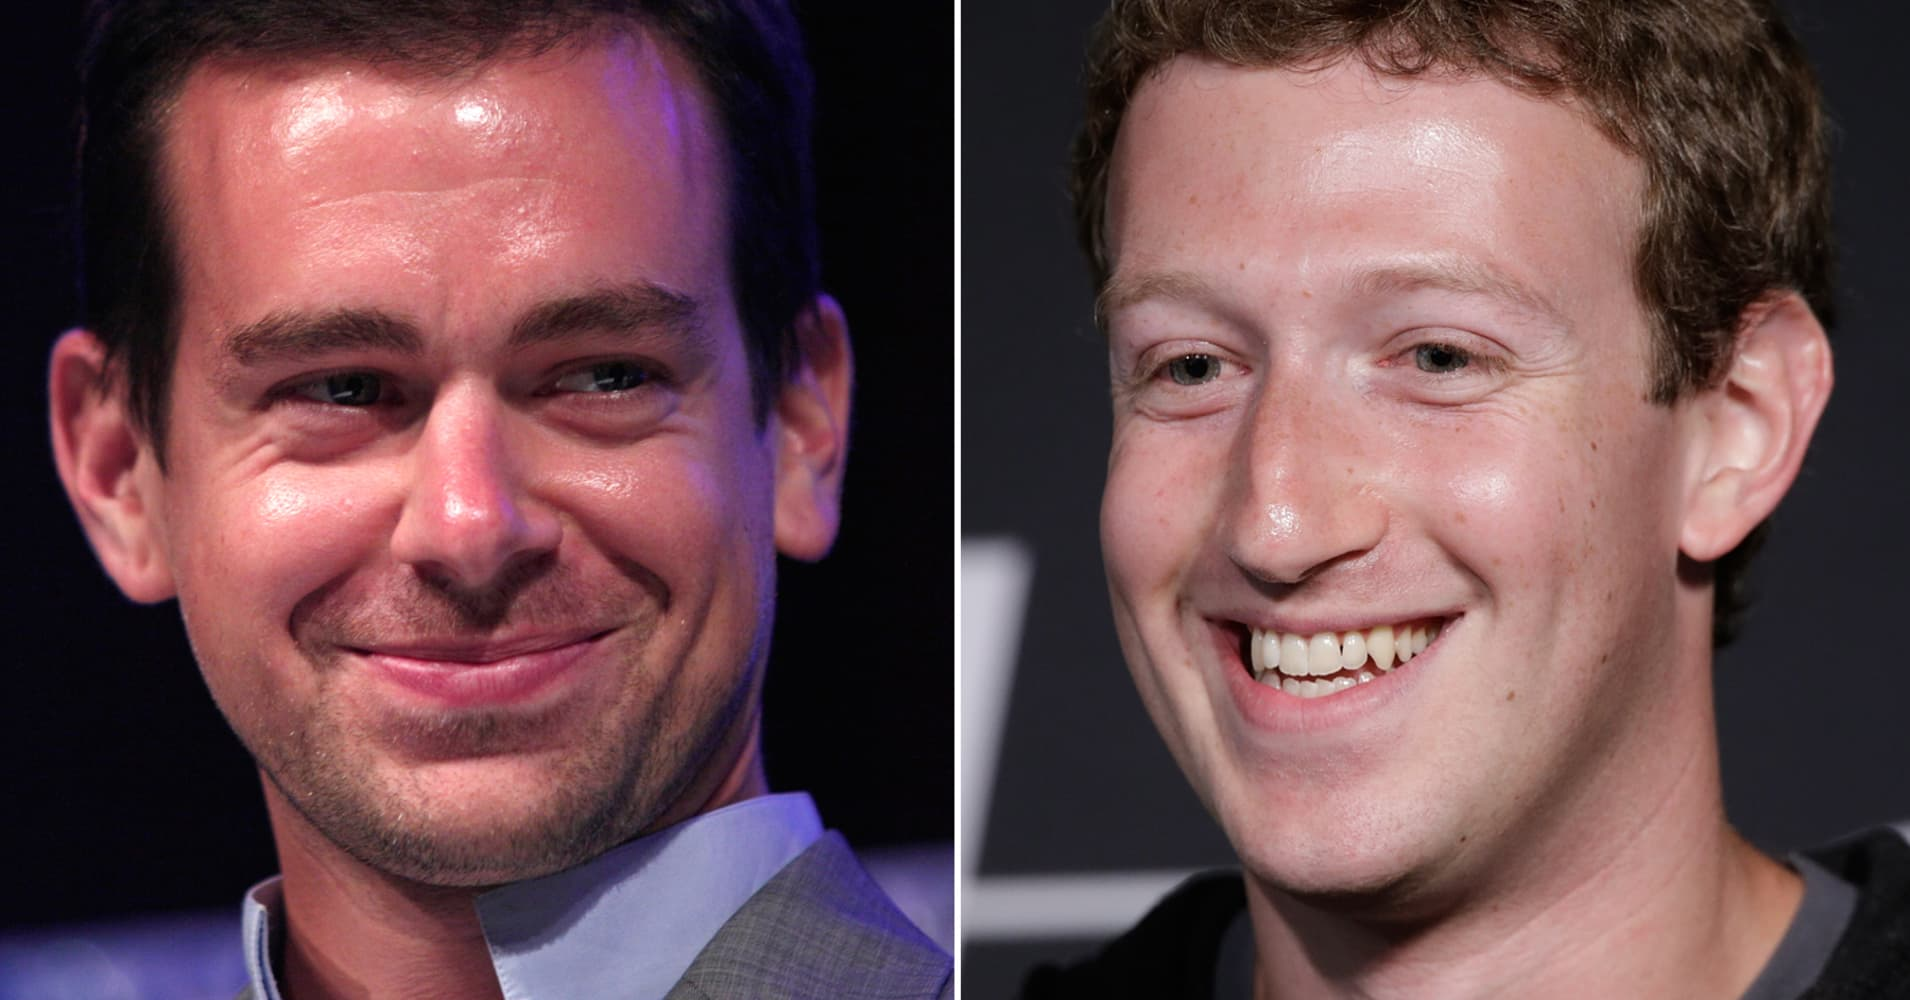 Mark Zuckerberg Once Killed A Goat And Served It To Jack Dorsey